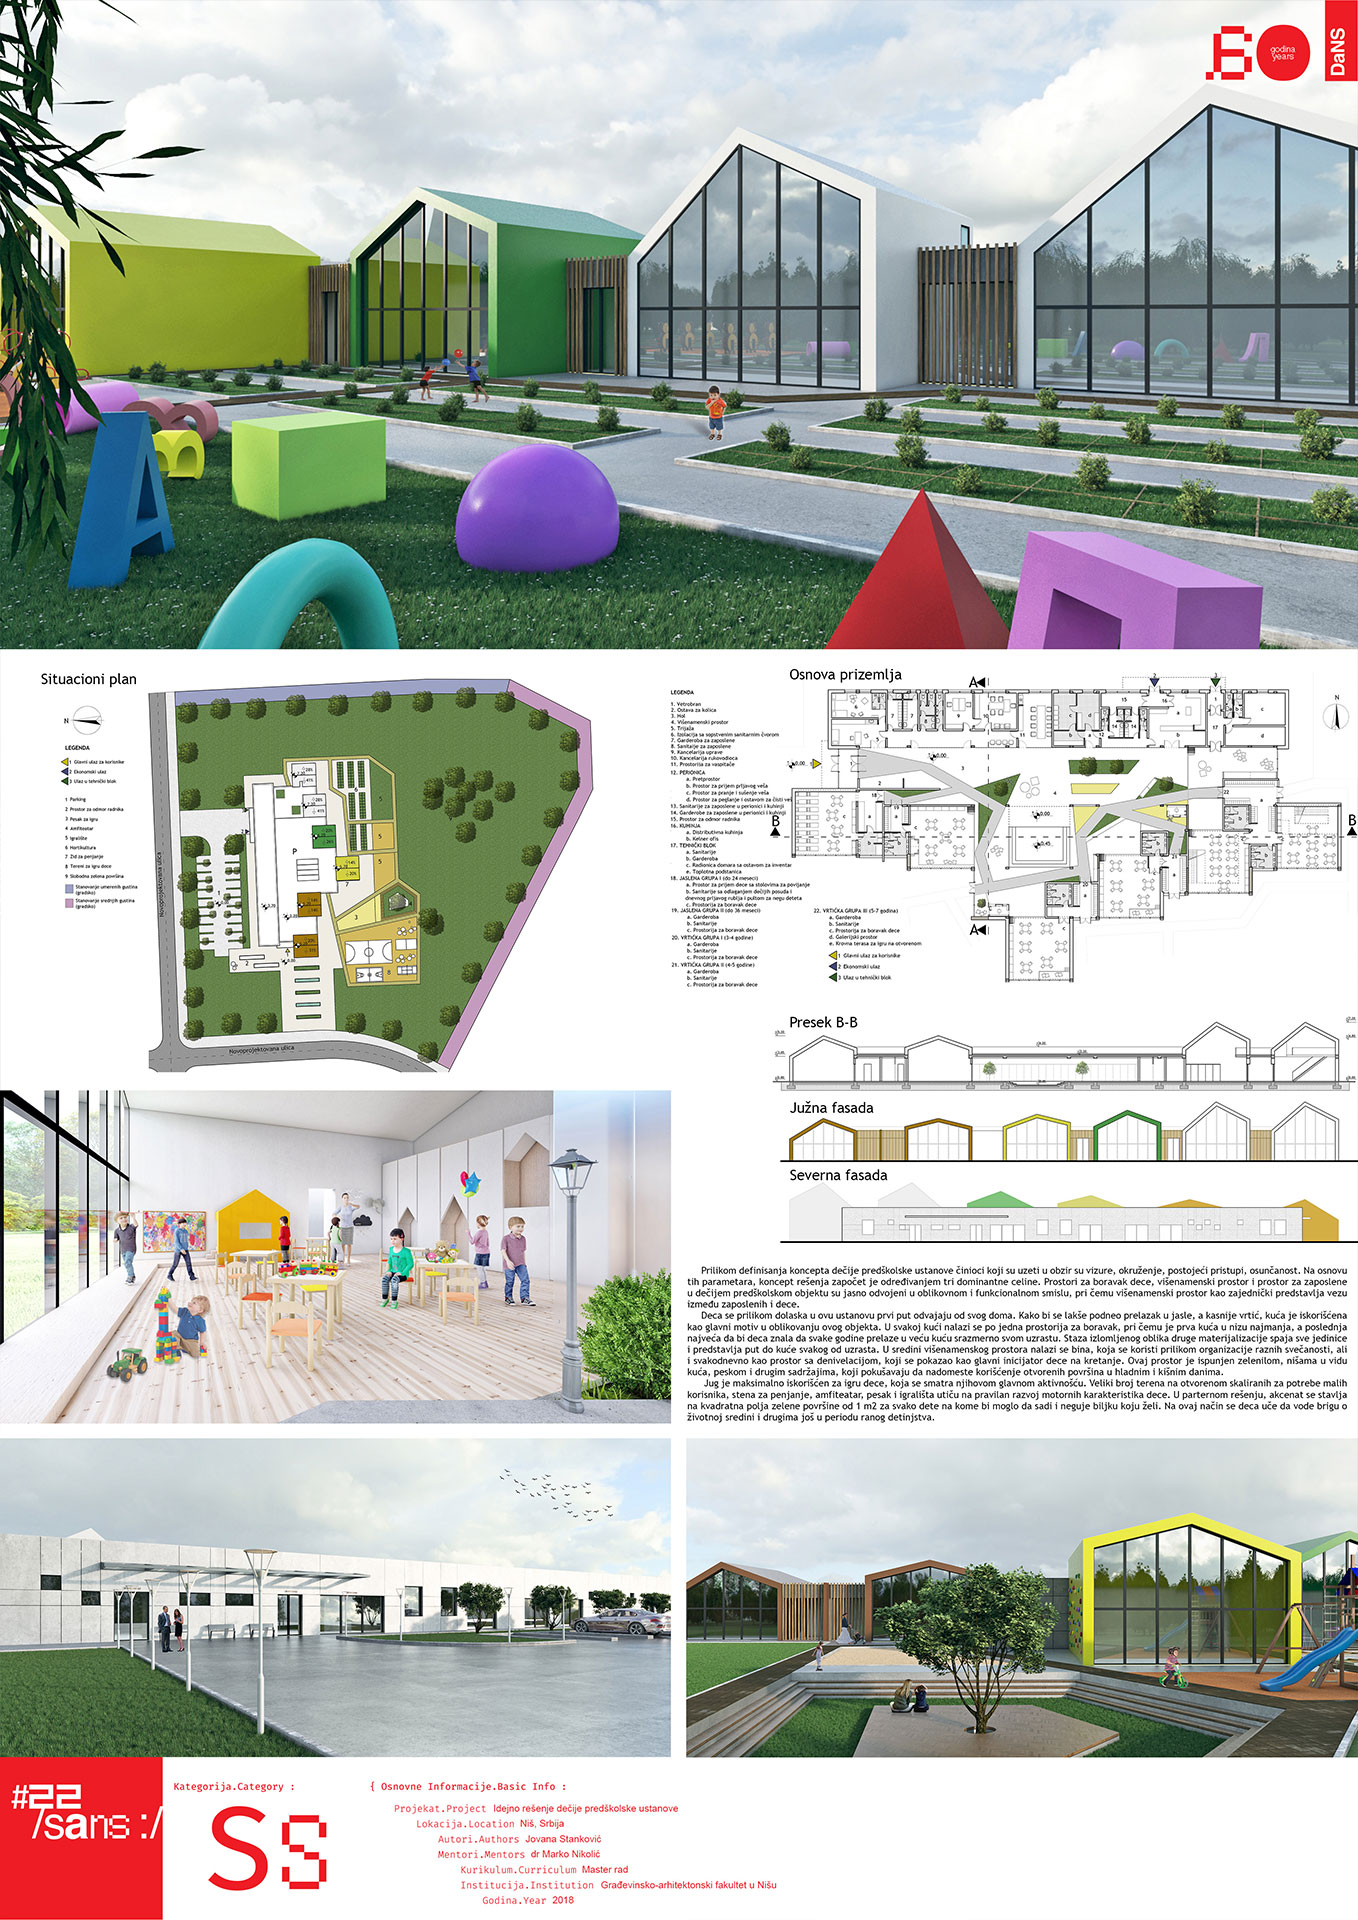 "<p class=""naslov-br"">ss26</p>Idejno rešenje dečije predškolske ustanove u Nišu // Conceptual Solution of a Children's Preschool Institution in Niš"